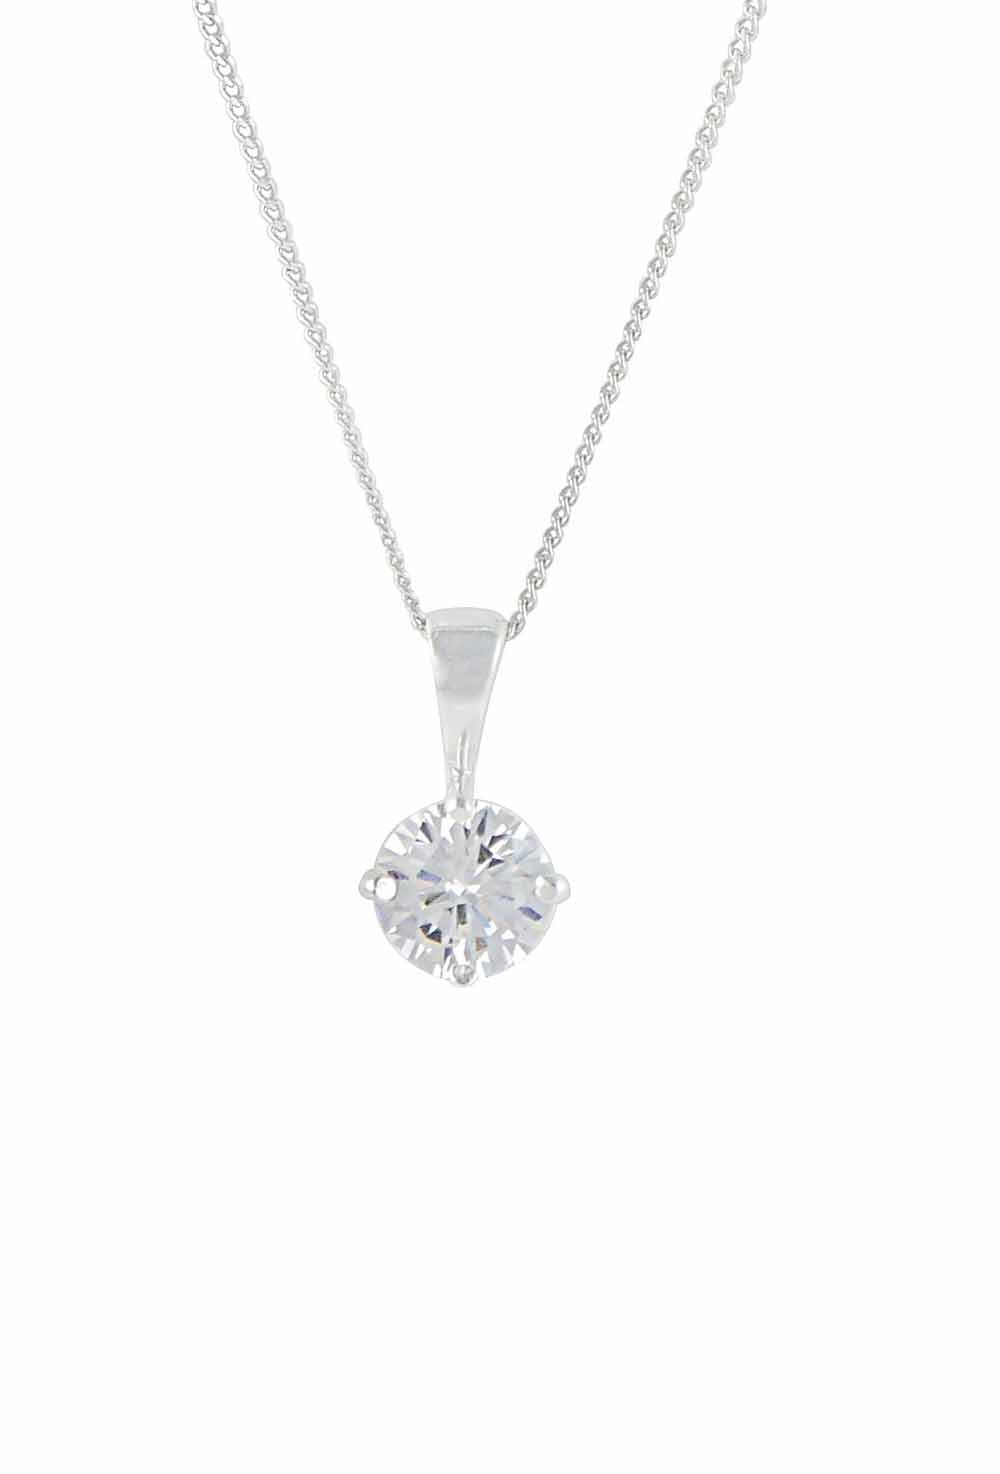 Single Cubic Zirconia Pendant Necklace